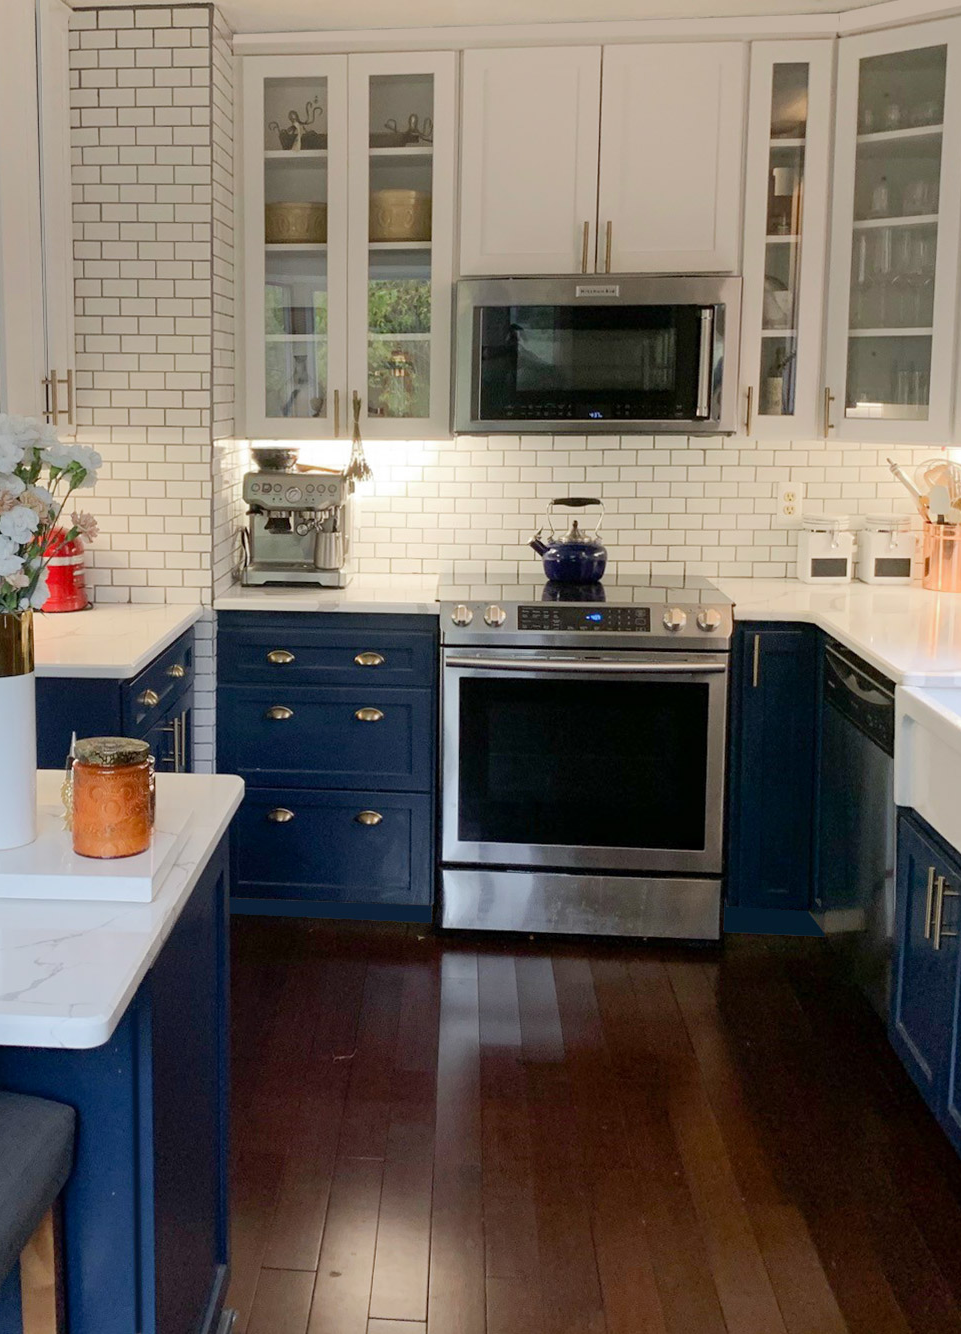 Transitional White And Navy Kitchen Remodel Shaker Style Cabinets Kitchen Design